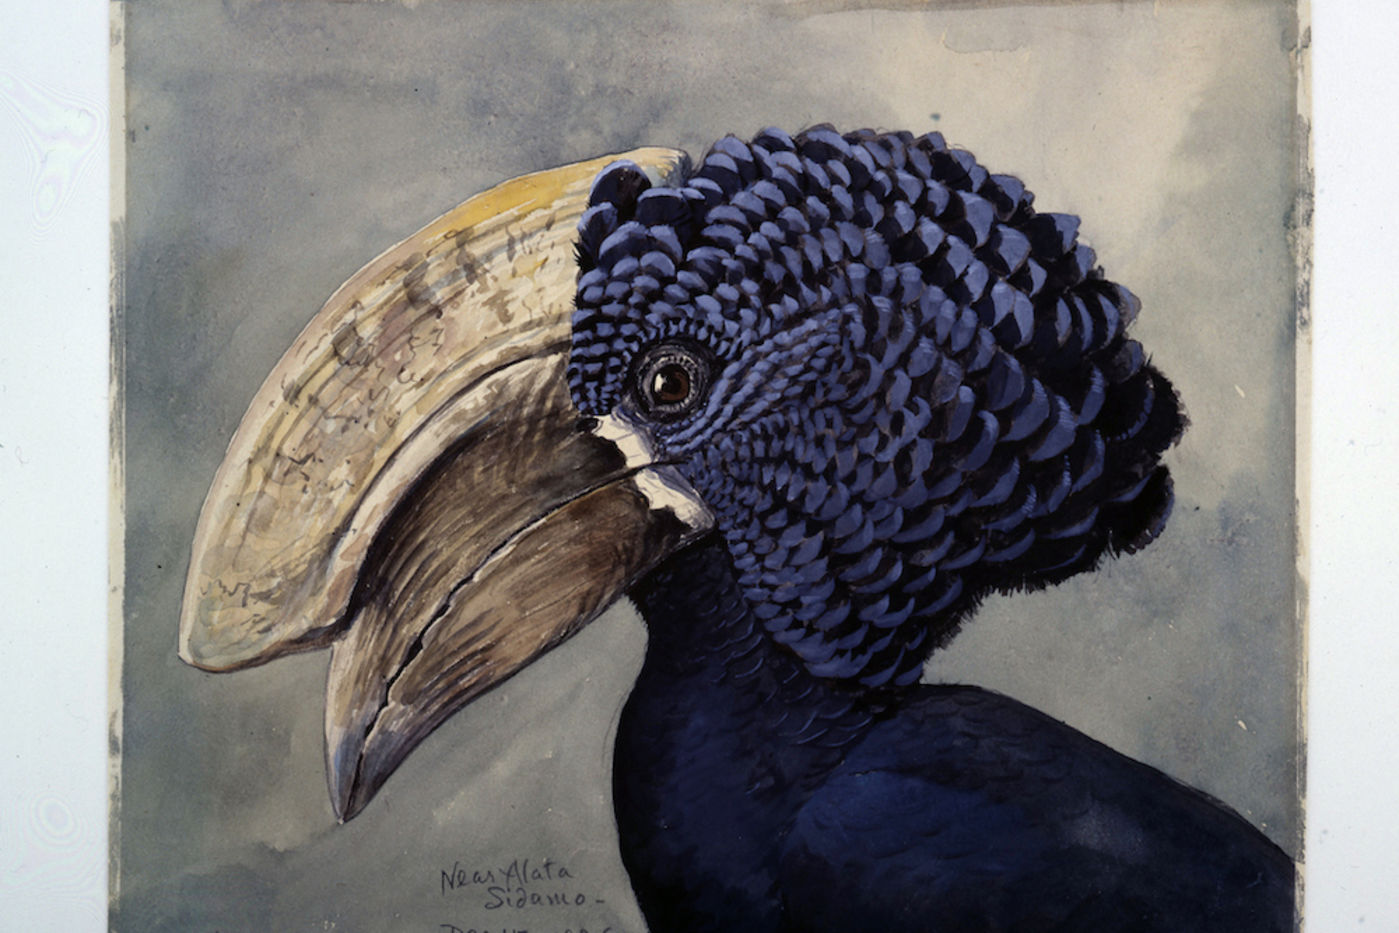 Painting of a bird's head in profile. Bird is blue with a large beak and protrusion above the beak.